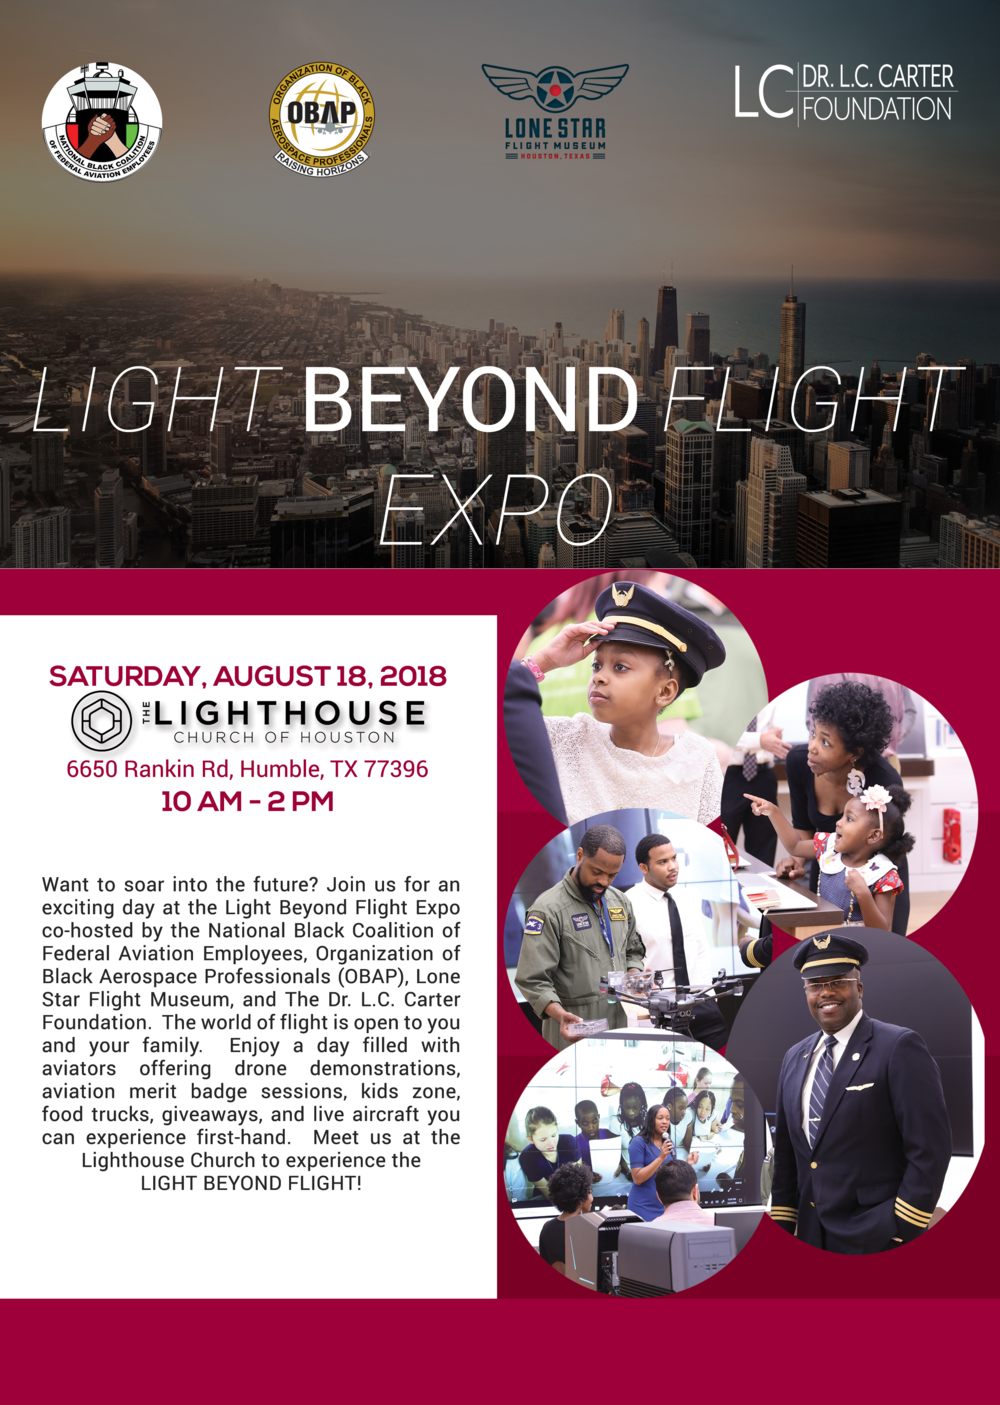 LightBeyondFlightExpo_FINALIZED.png